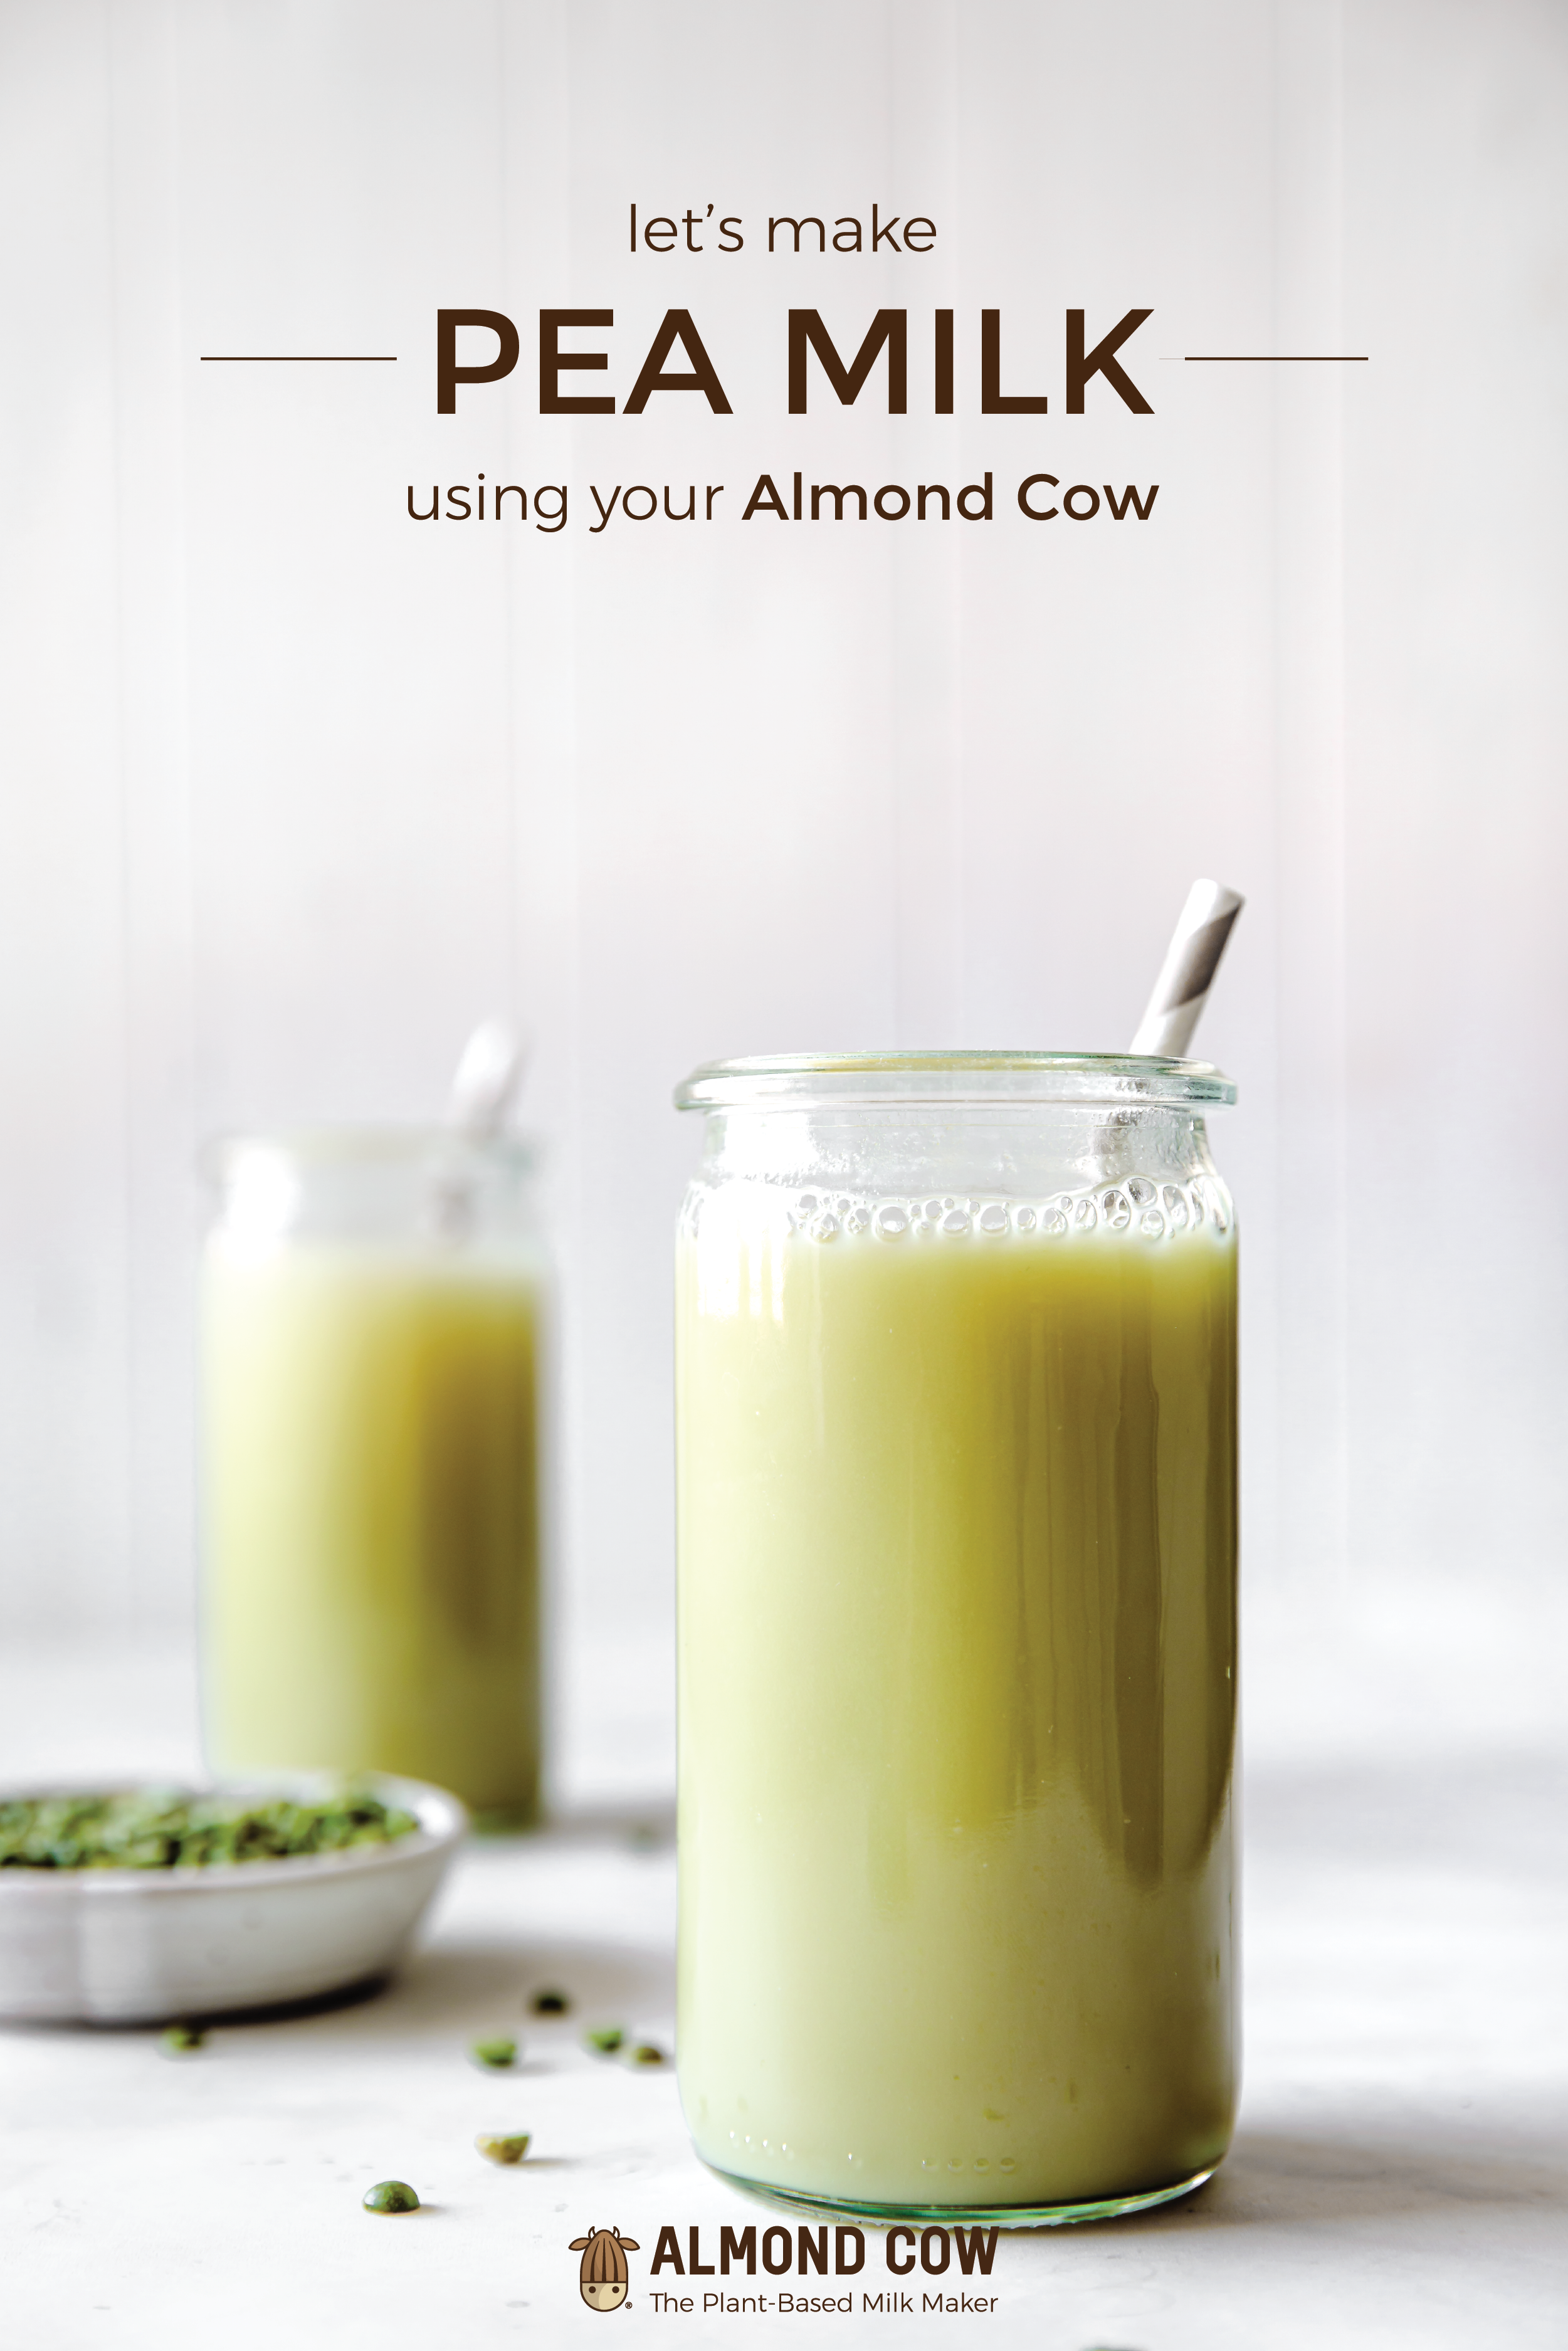 Almond Cow - The Plant-Based Milk Maker -   17 diet Clean Eating almond milk ideas